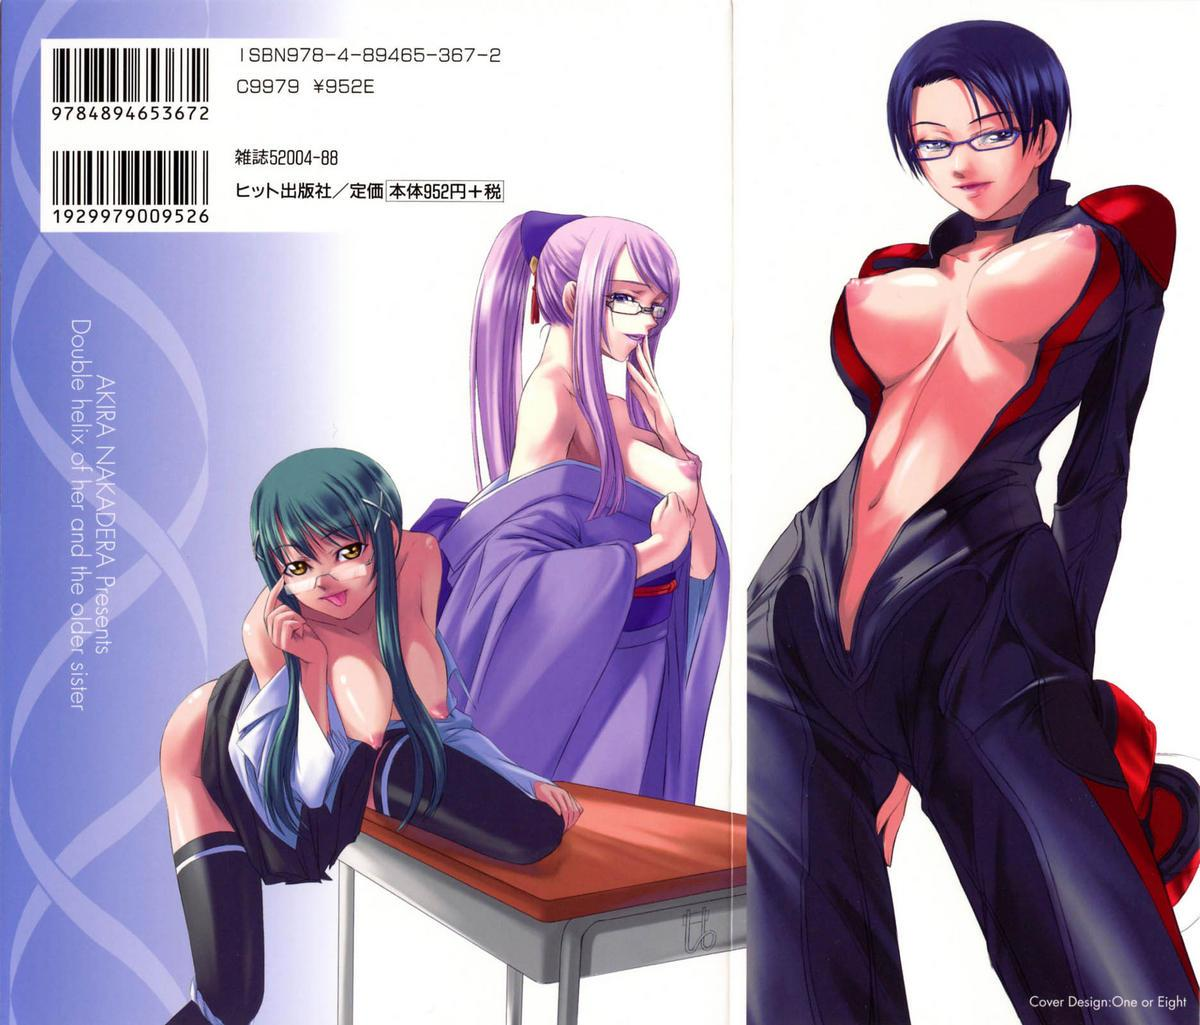 Kanojo to Ane no Nijuu Rasen   Double Helix of Her and the Older Sister 1